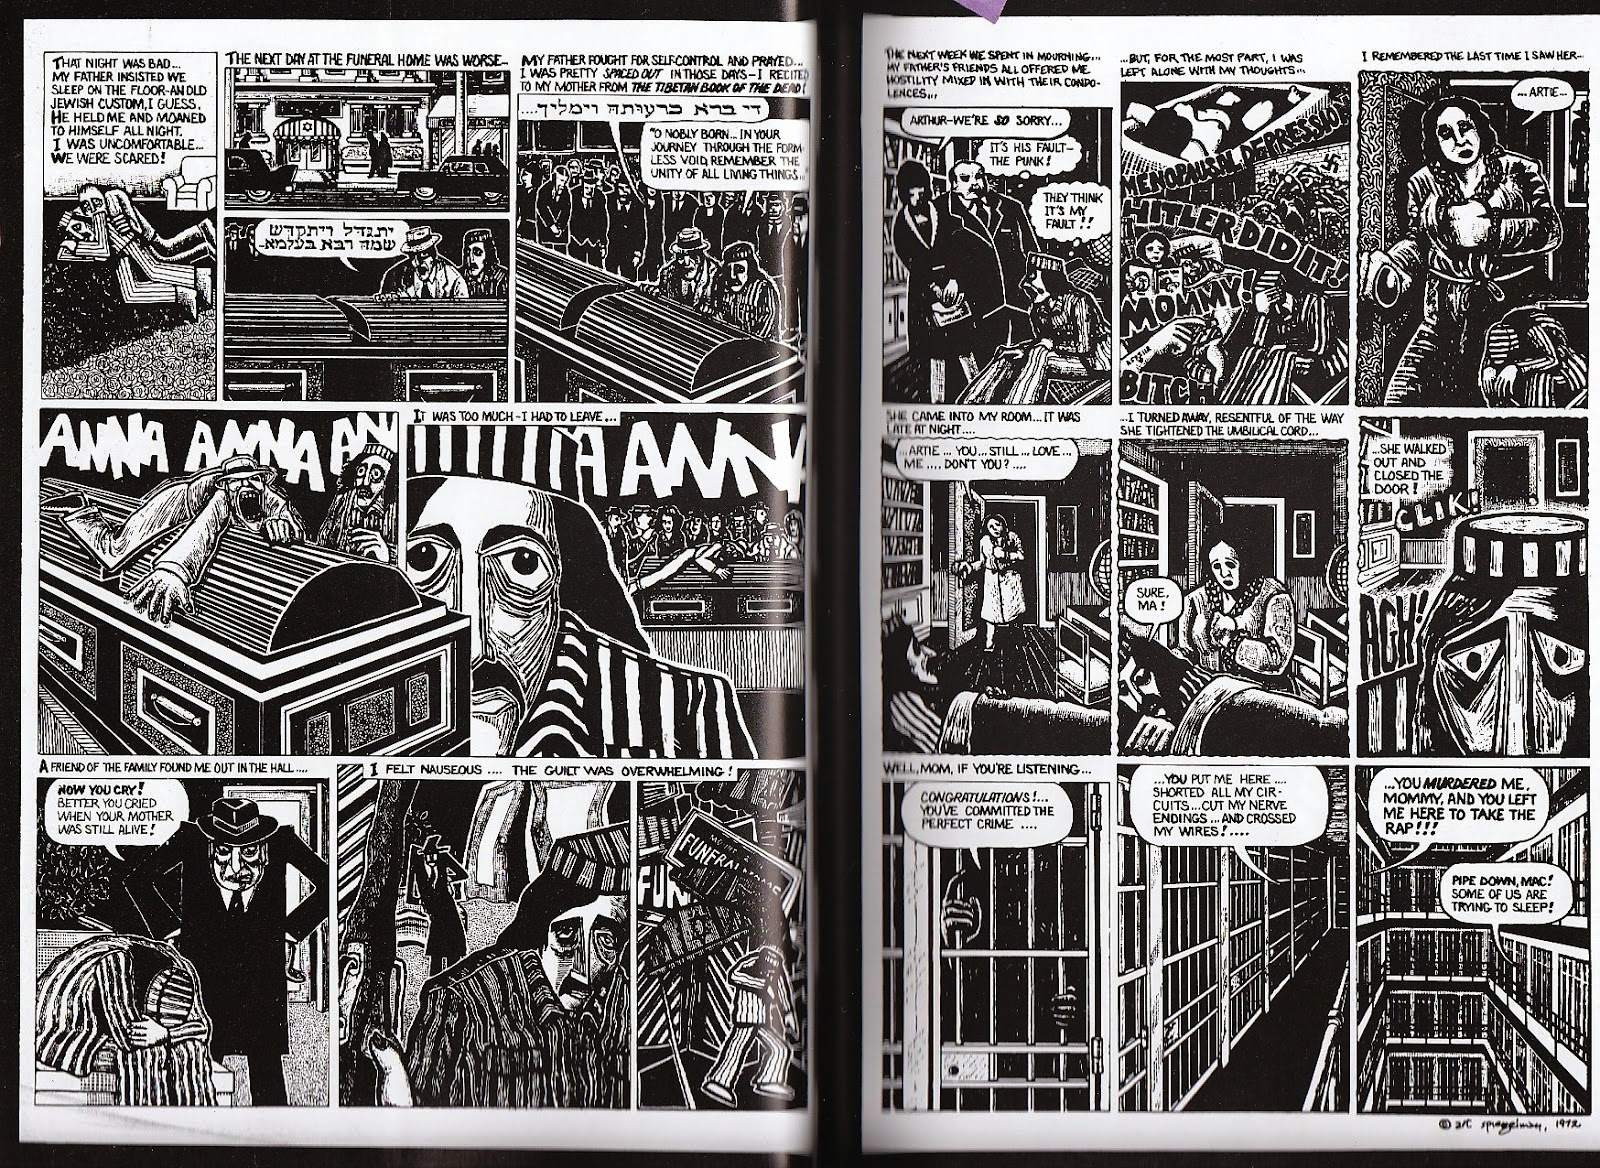 maus spiegelman anthropomorphism Anthropomorphic maus one of the interesting bits of background about spiegelman's text is that the mice were not originally drawn quite so cartoonishly.